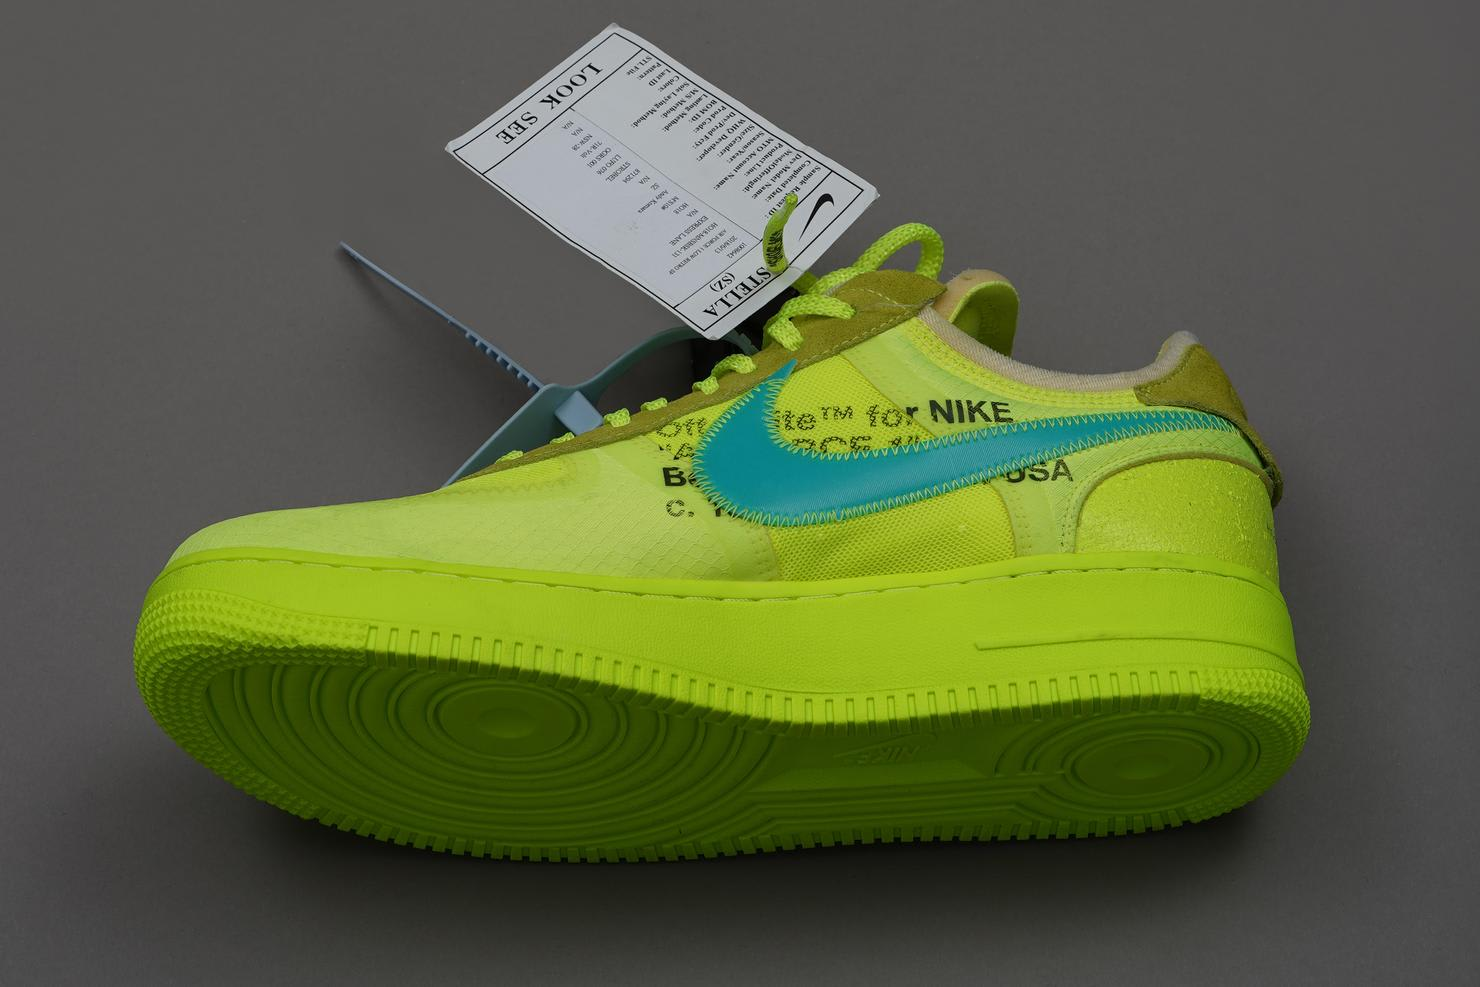 Off-White x Nike Air Force 1 Low 'Volt' Prototype